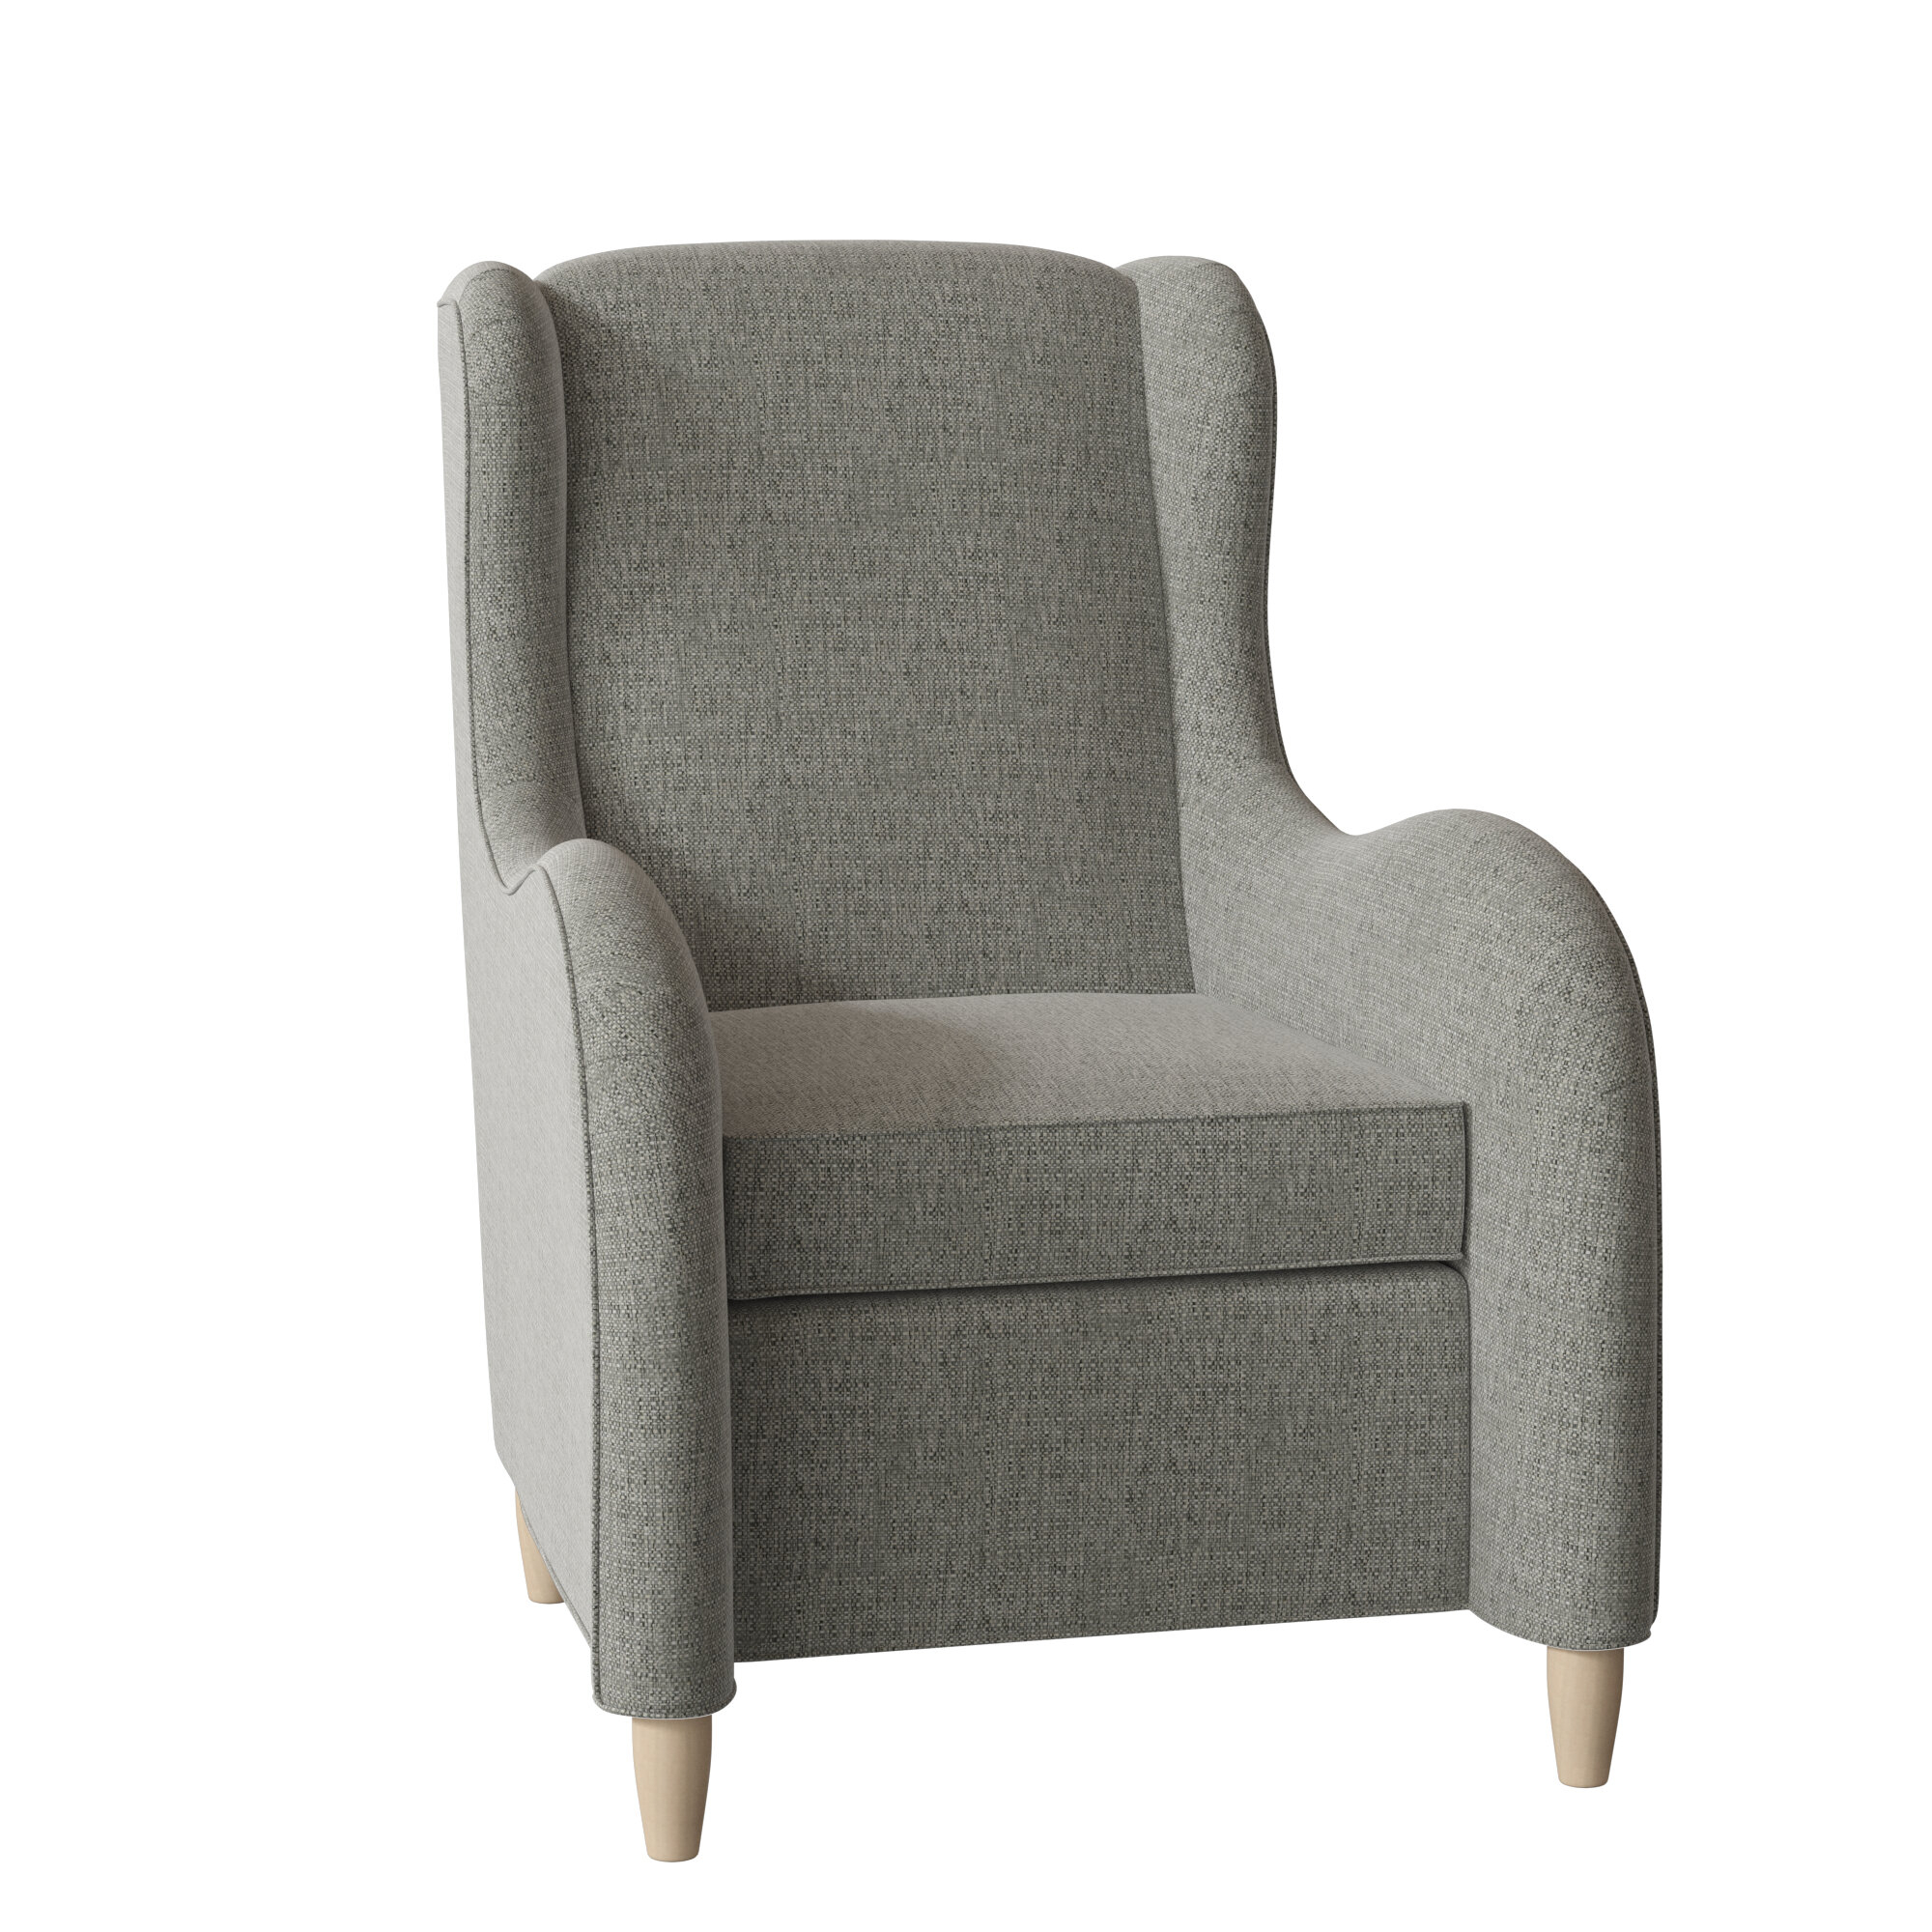 Angela Wingback Chair With Busti Wingback Chairs (View 9 of 15)